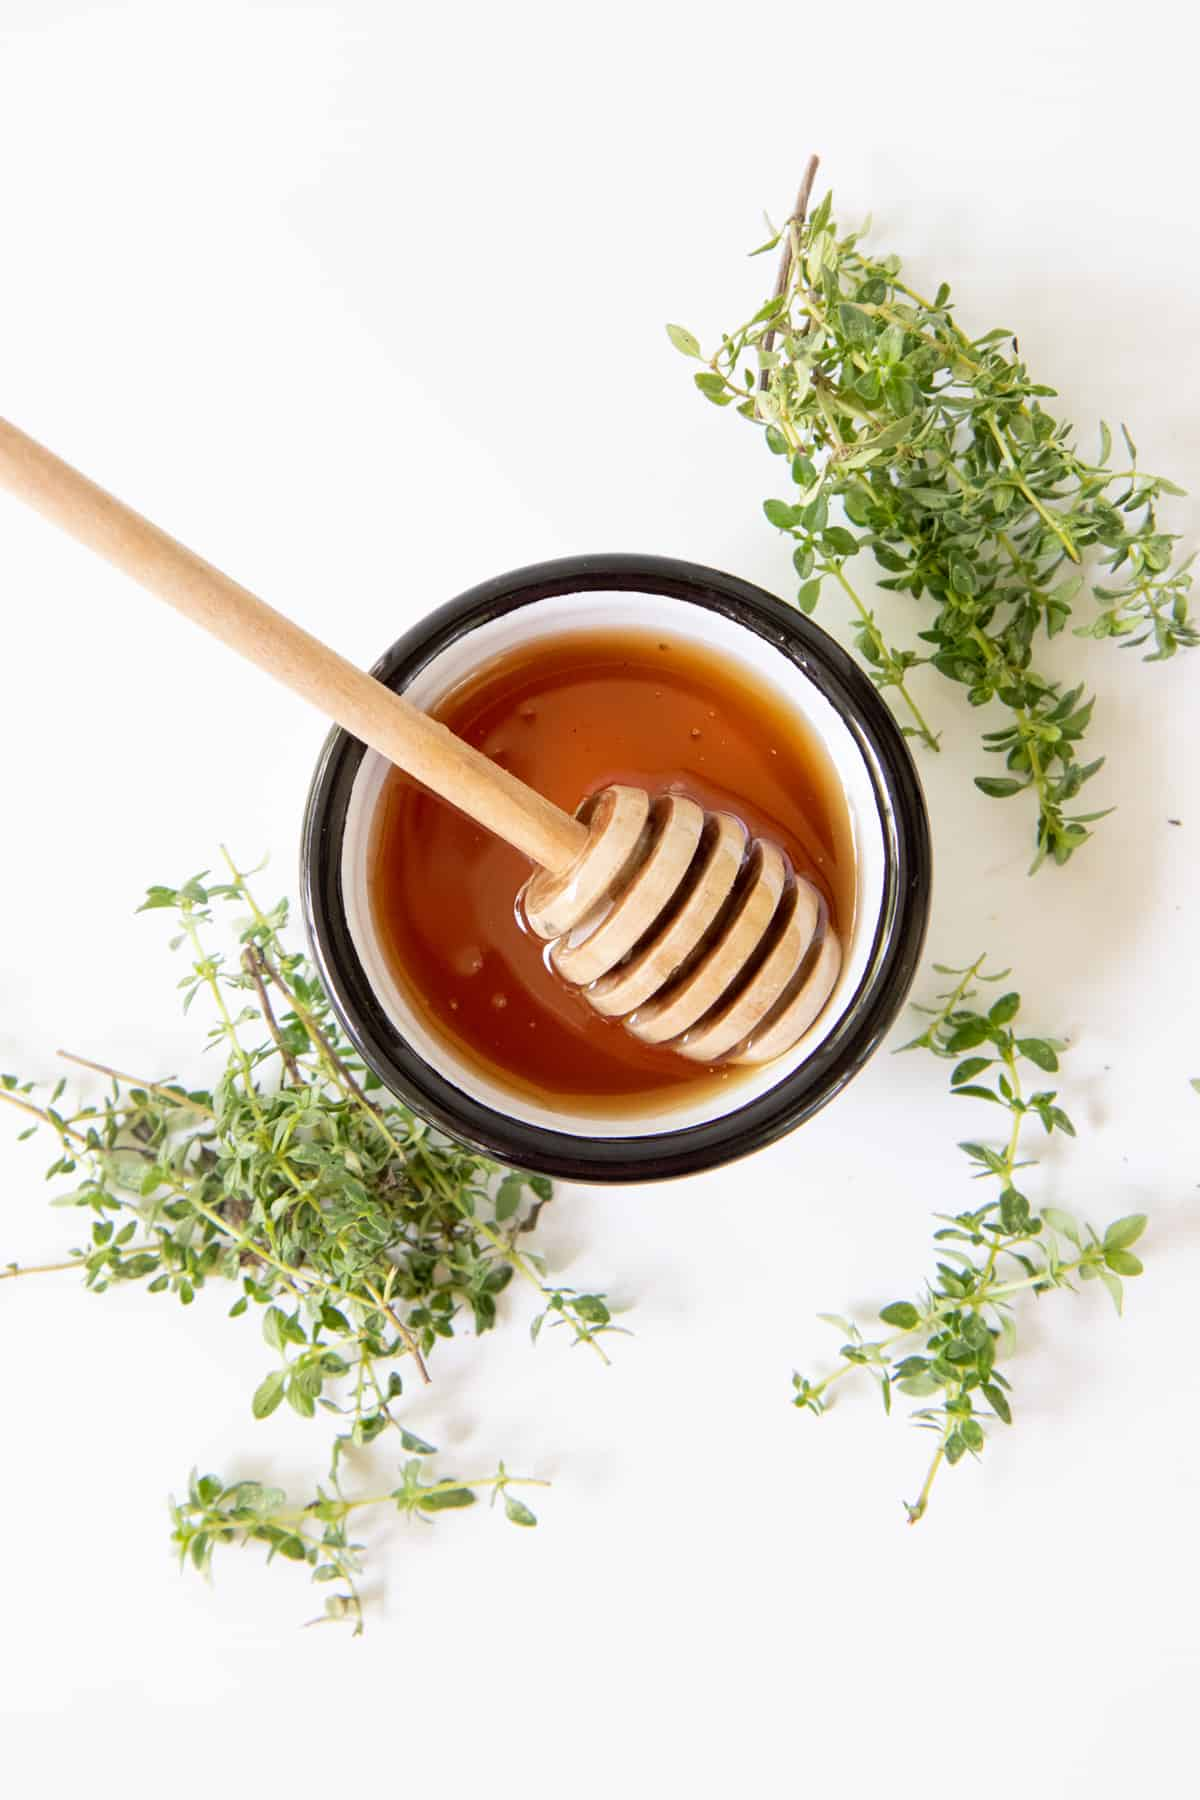 Honey in a small dish with a honey dipper. The dish is surrounded by fresh lemon thyme.